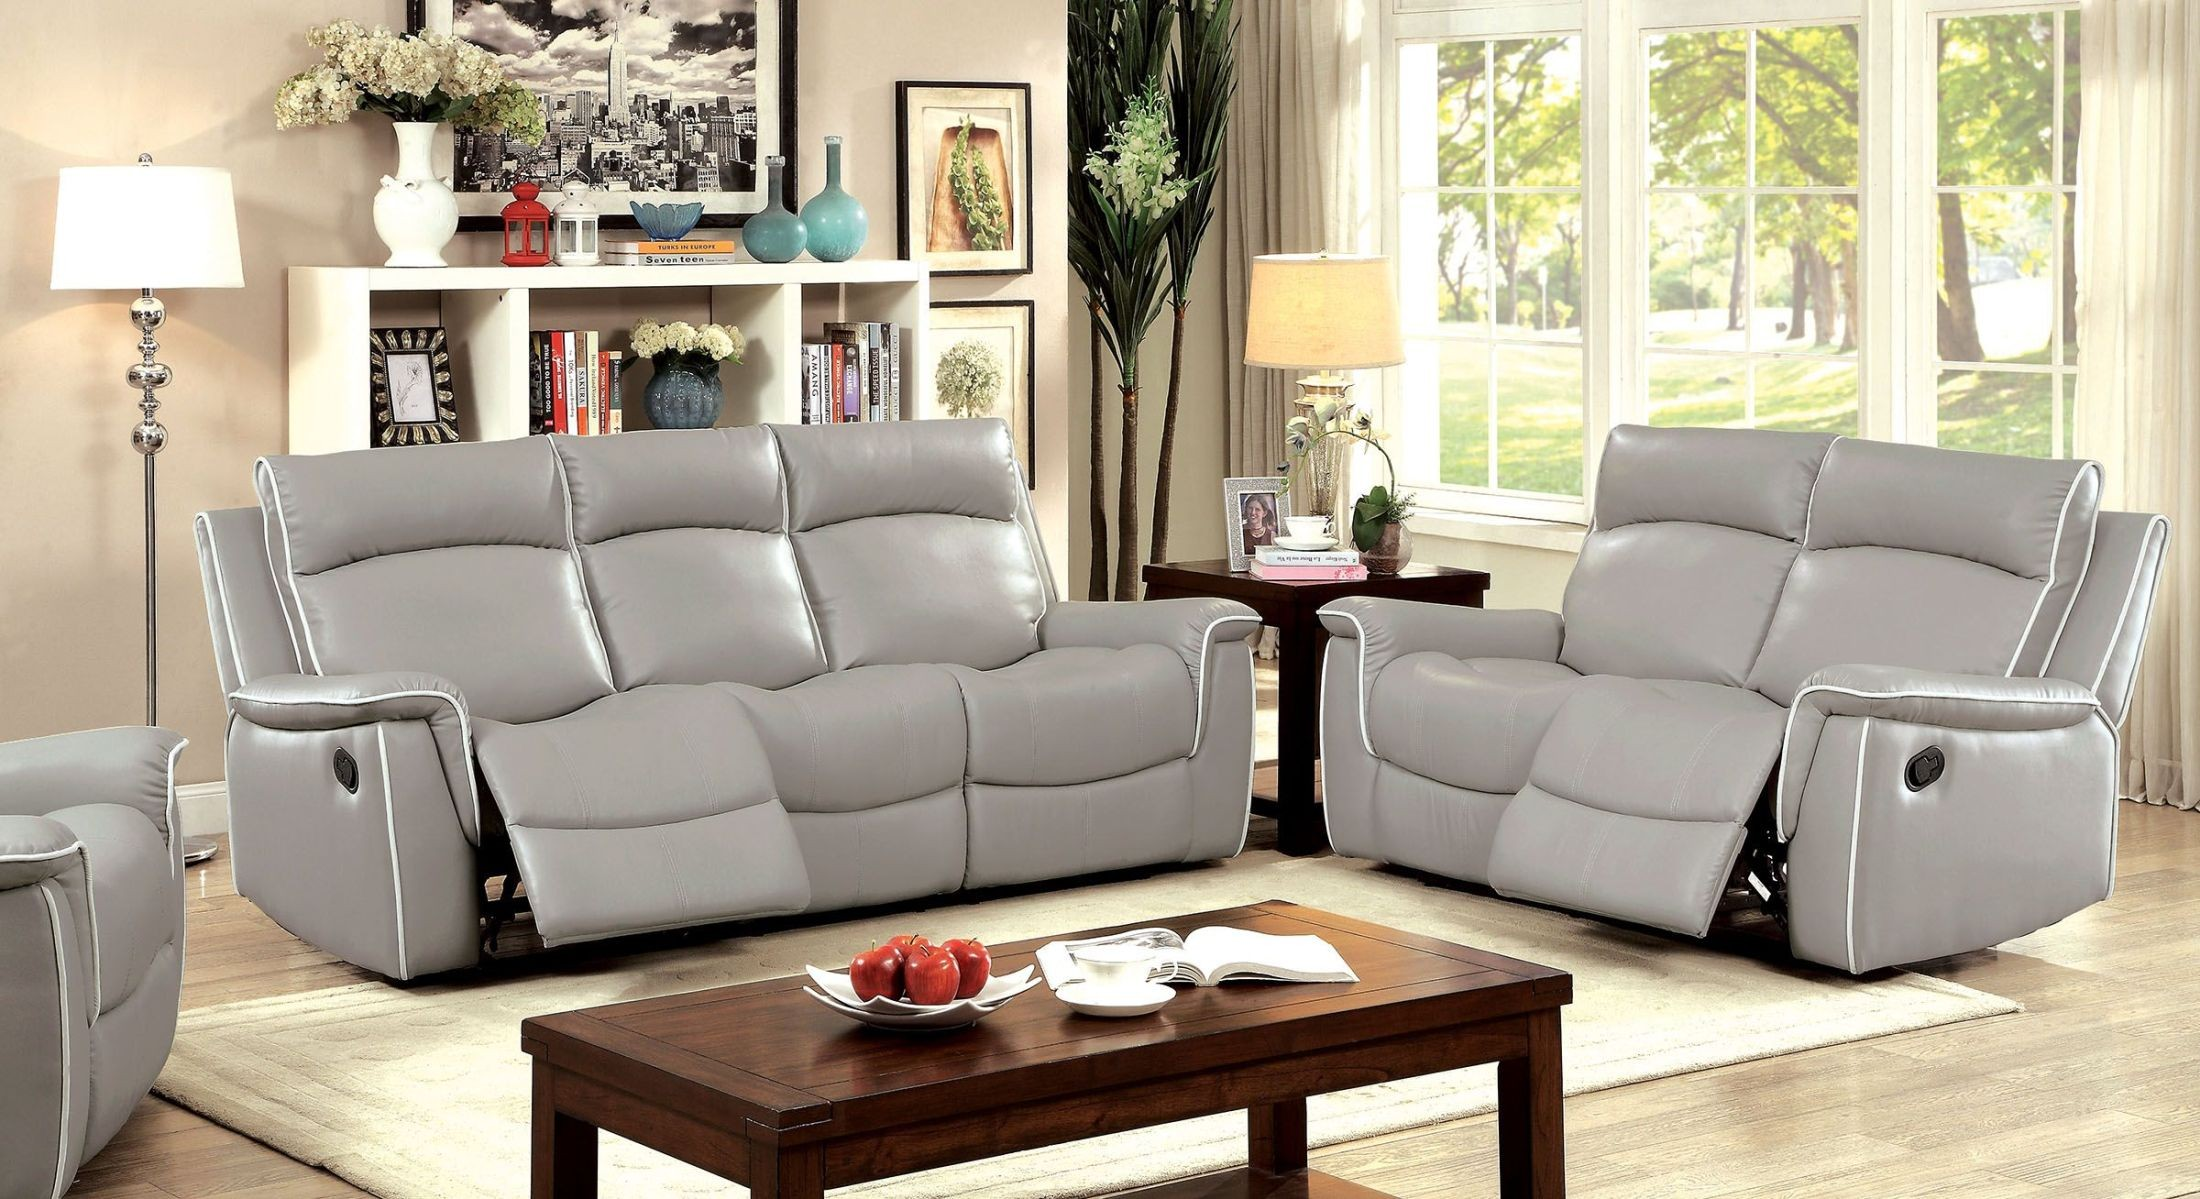 Salome light gray recliner living room set cm6798 sf for Front room furniture sets